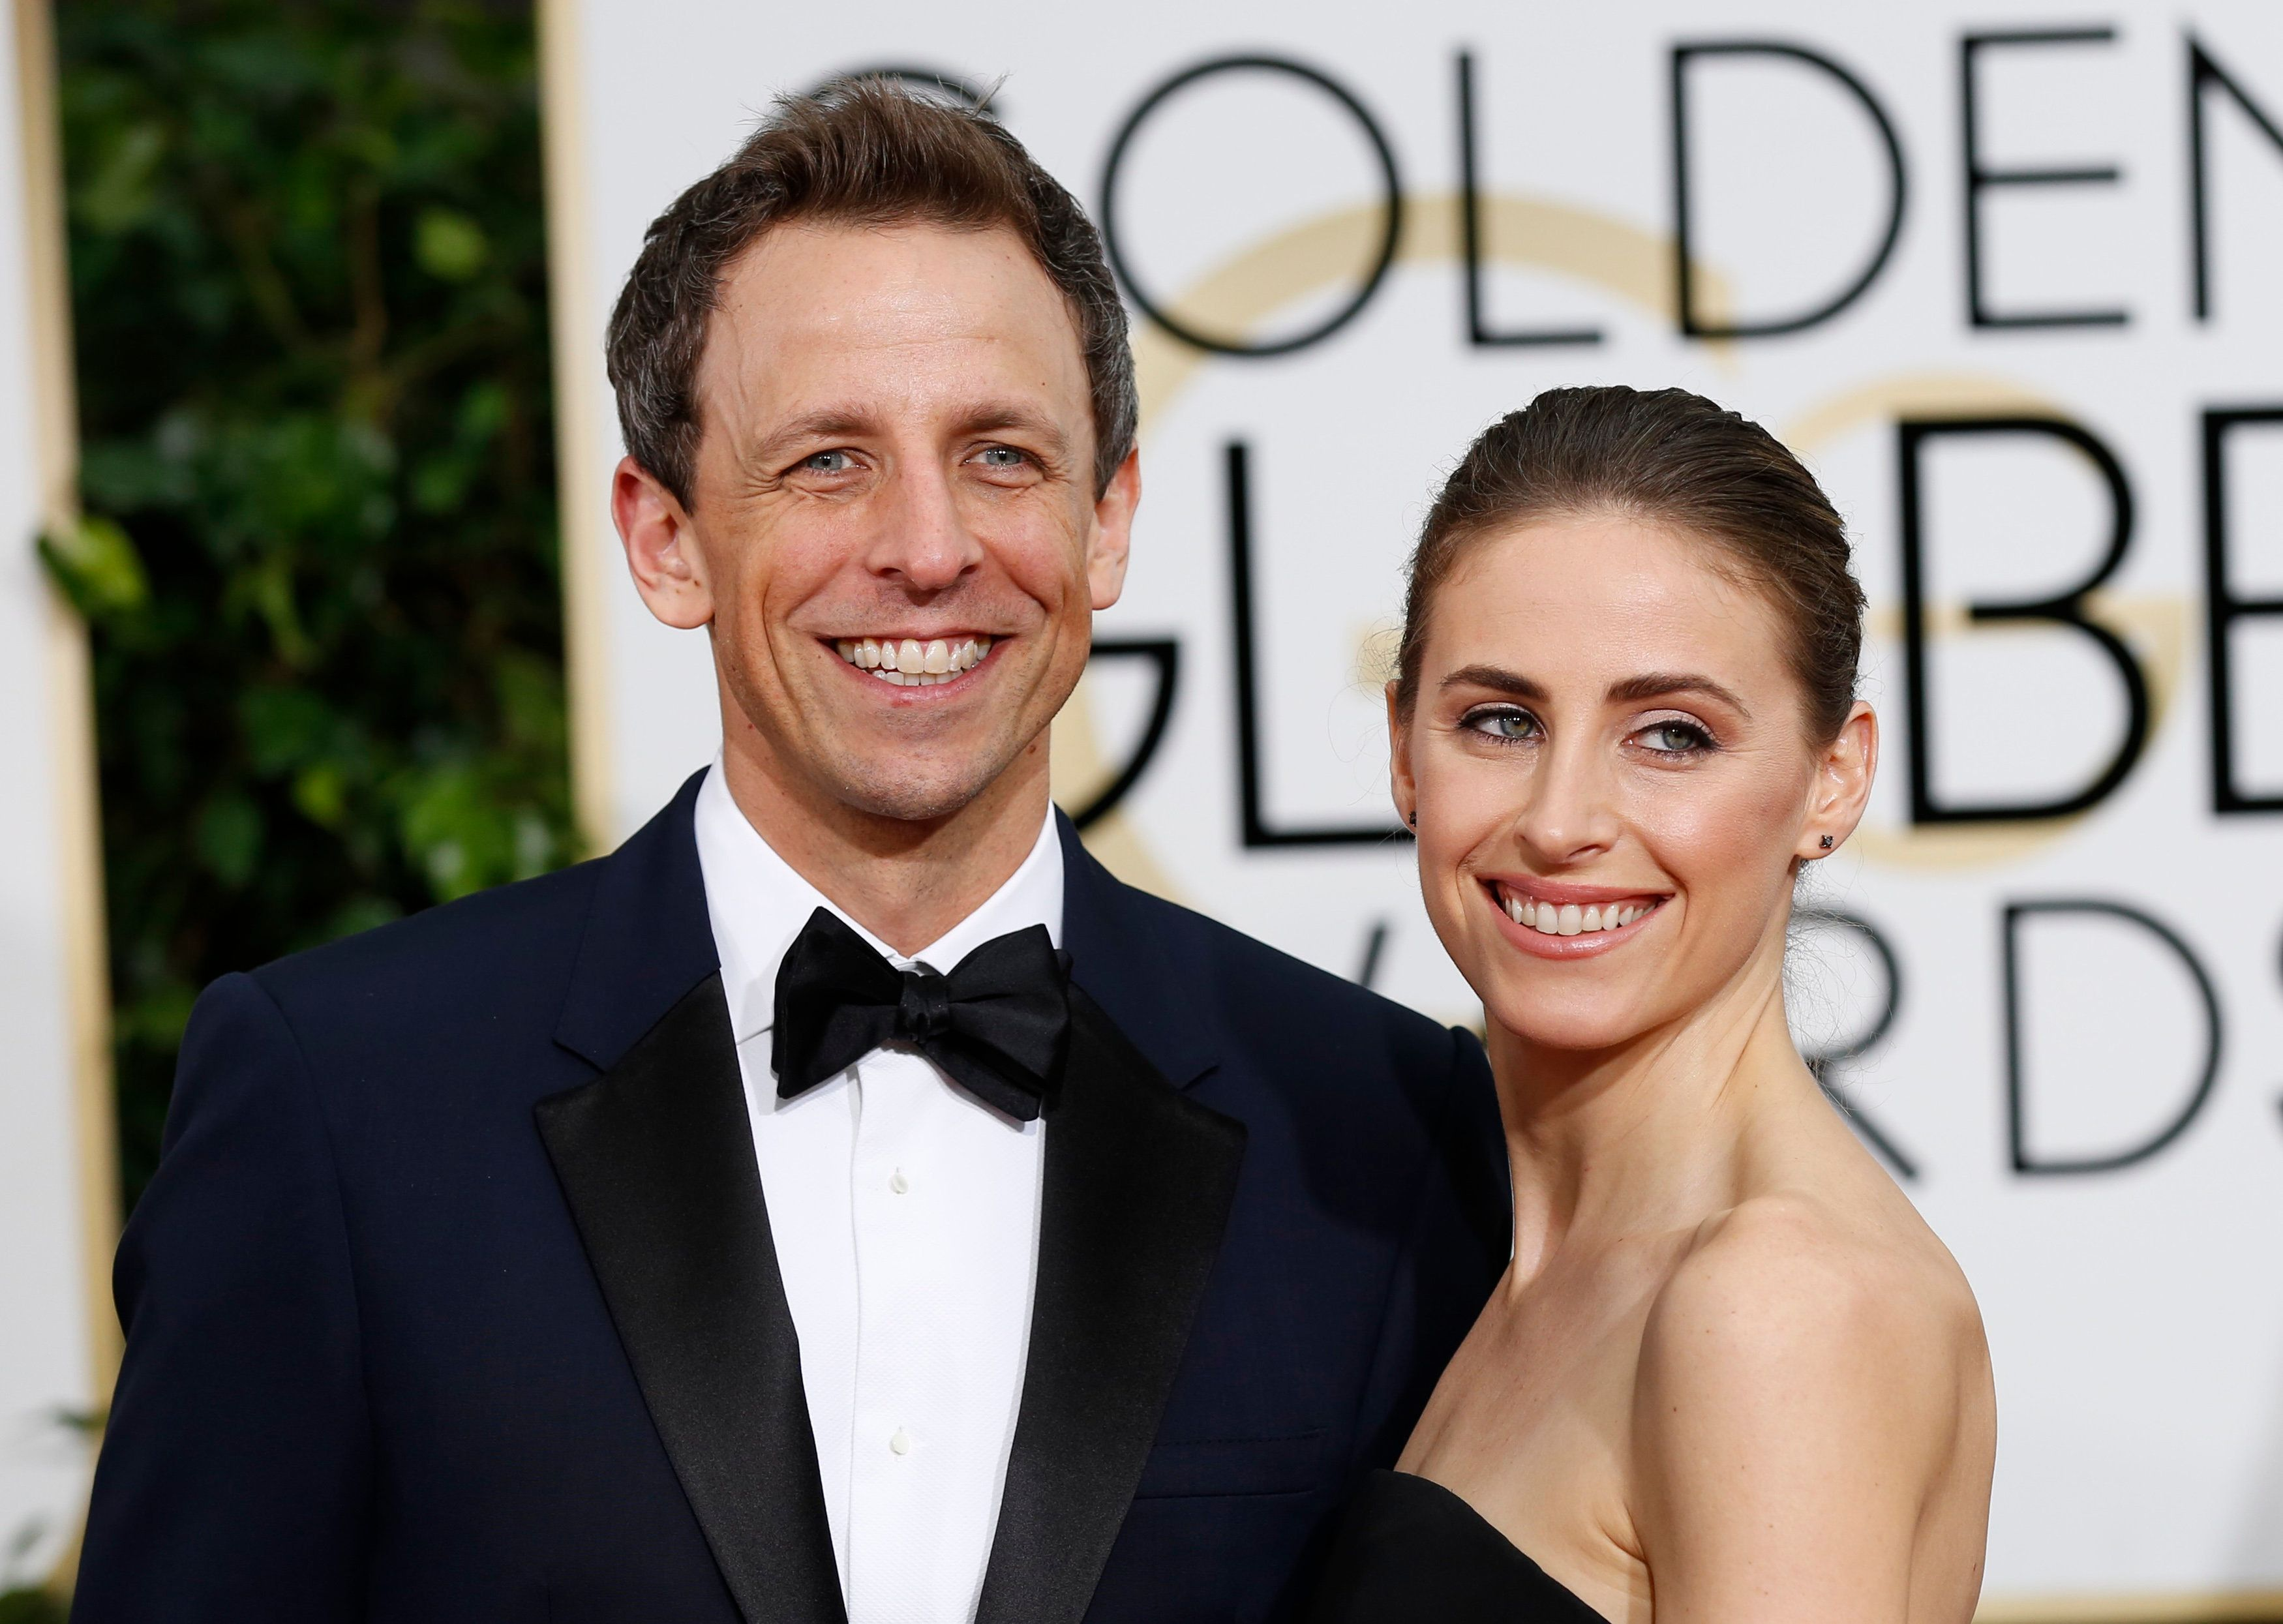 Meyers and his wife, Alexi, became parents a year ago today.